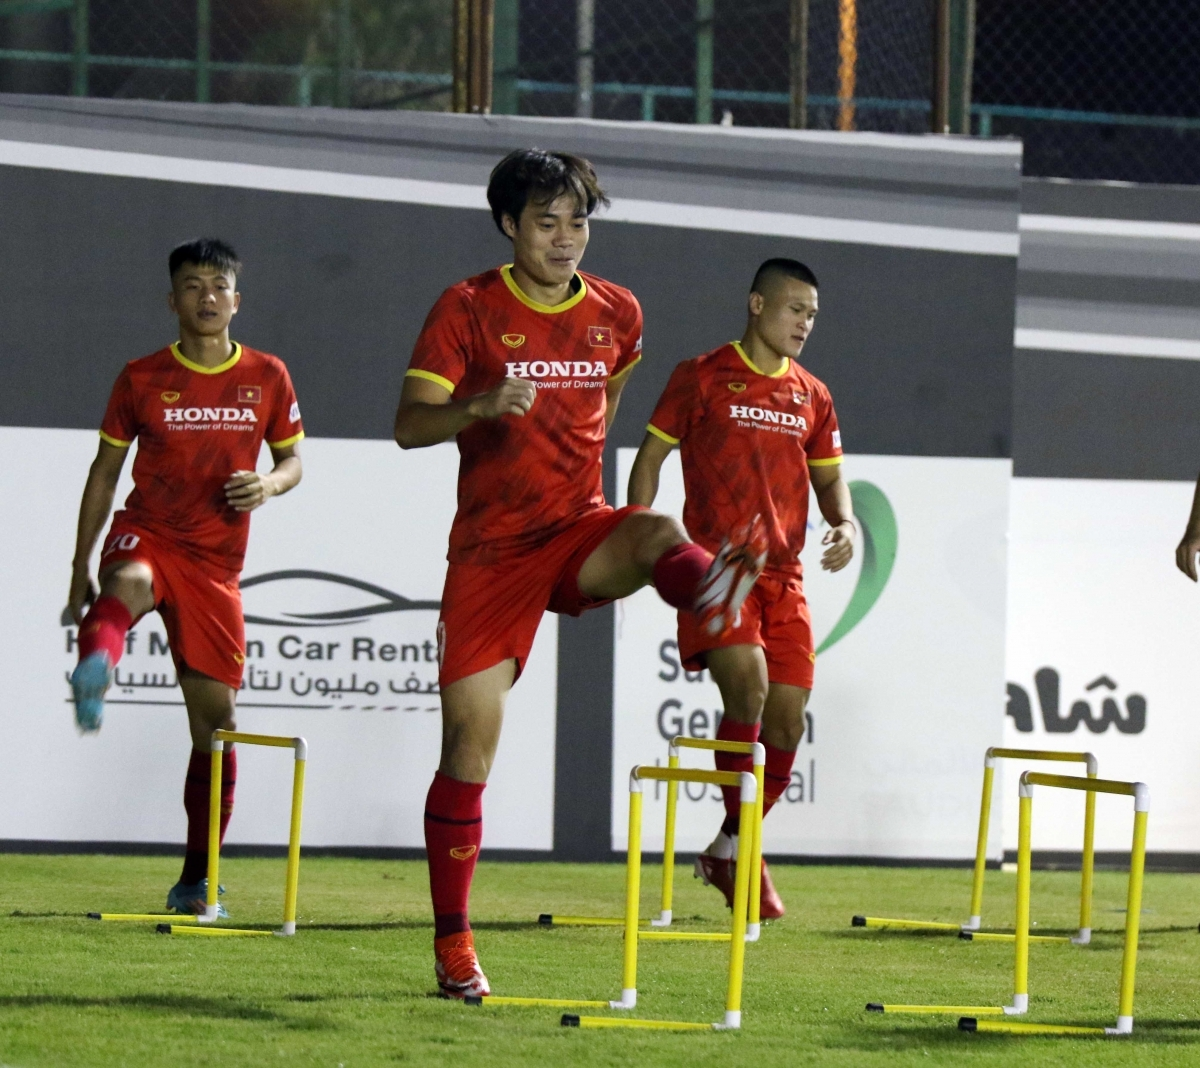 The training session helps to perfect the squad's line up for the World Cup qualifiers that are taking place in coming days.